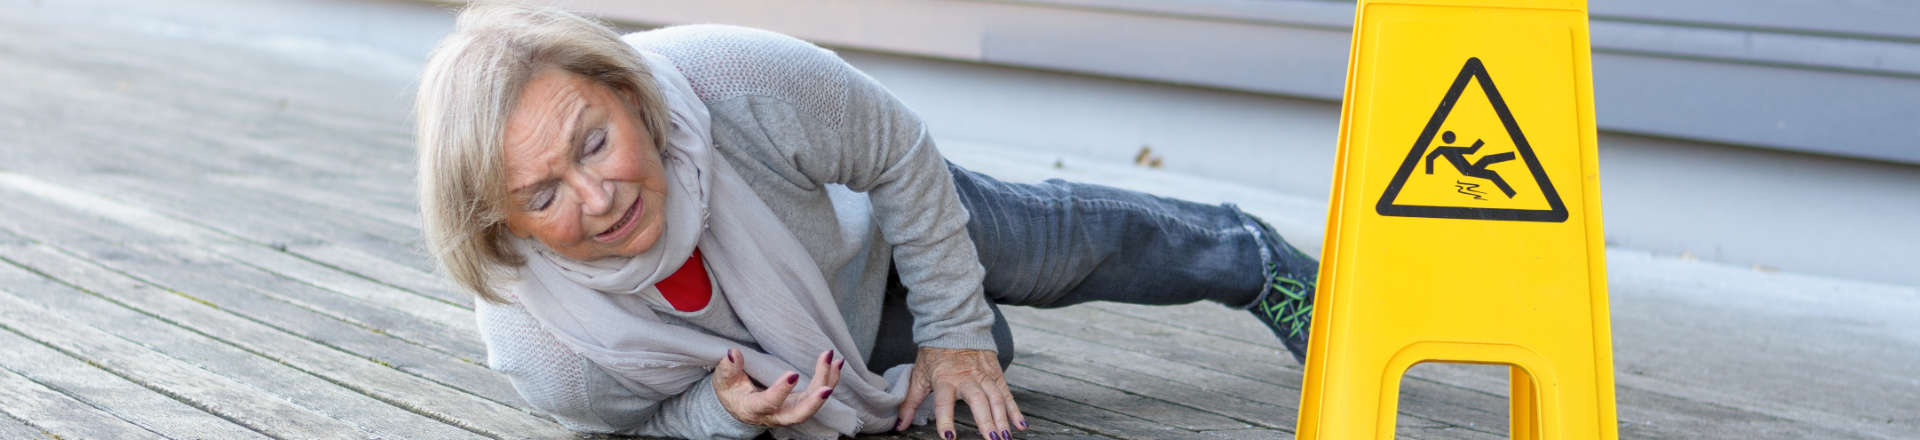 a woman on the wooden deck after slip and fall